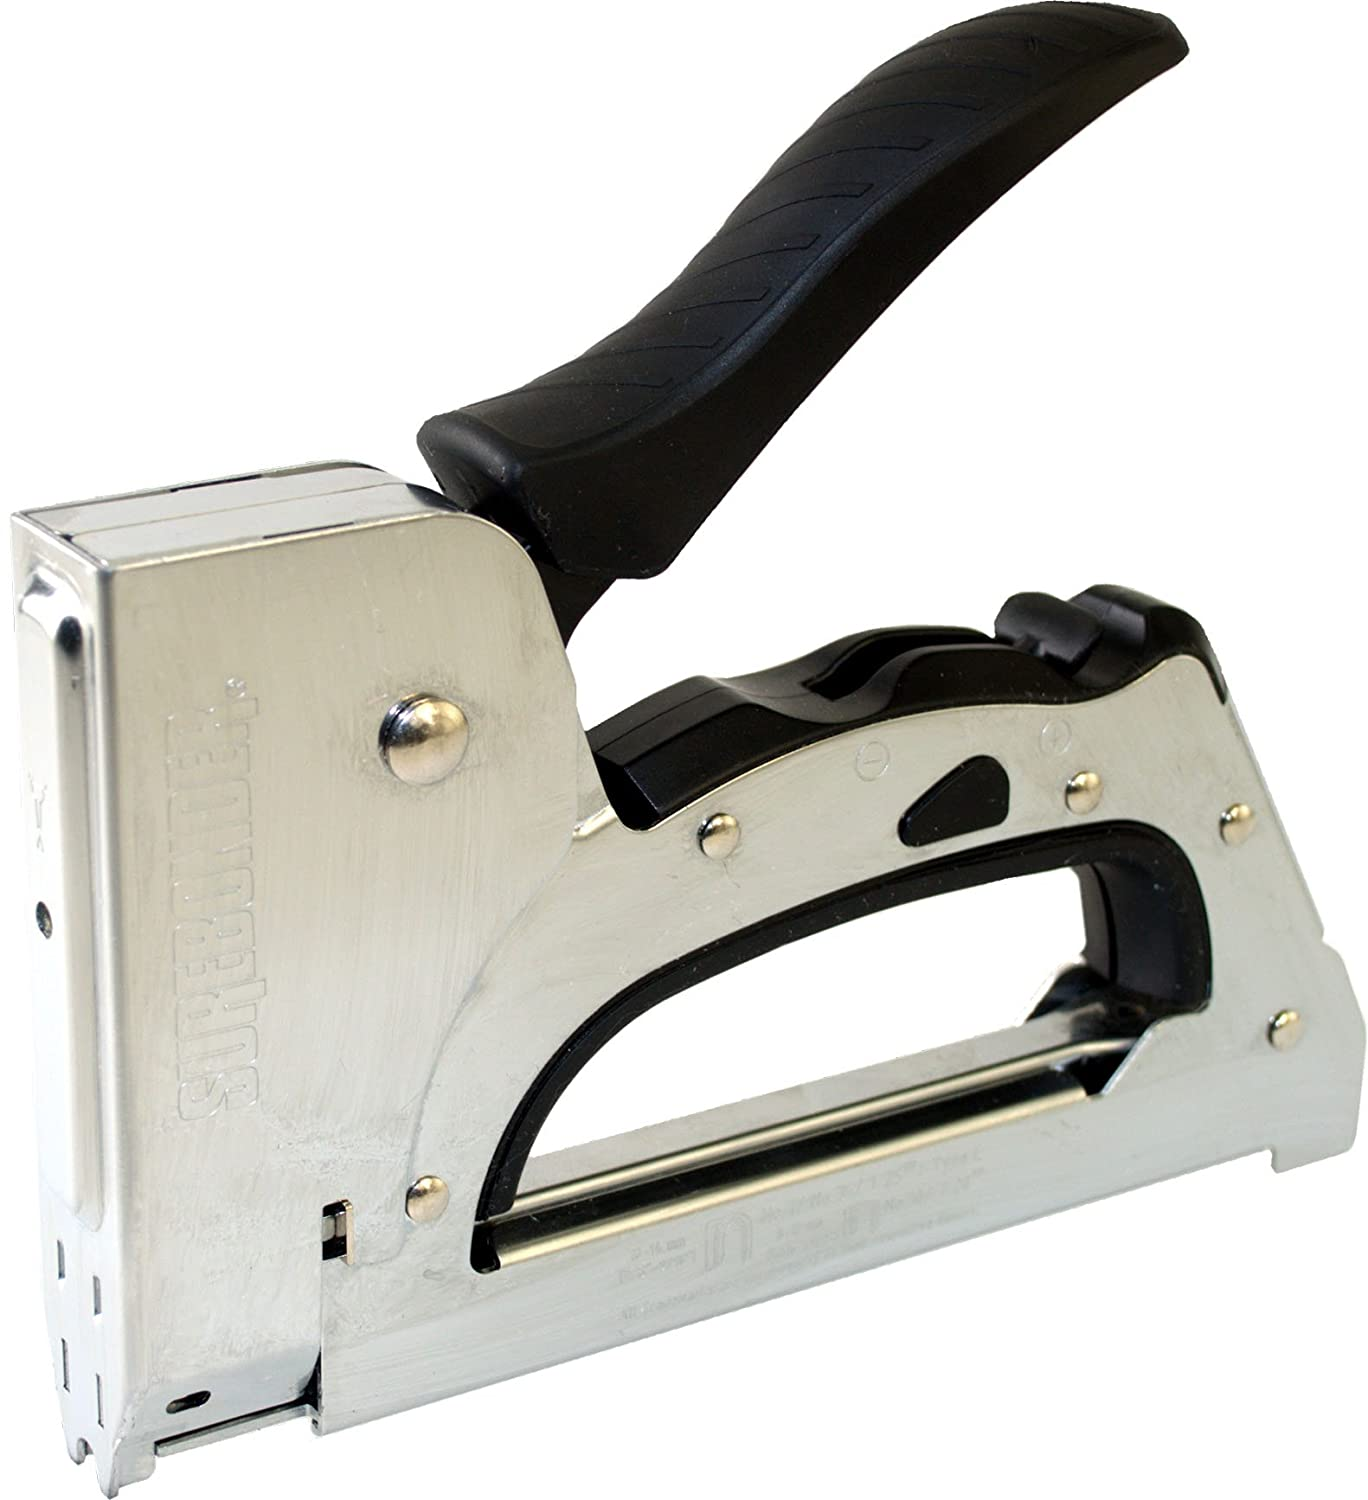 Amazon.com: Surebonder 5645 2-in-1 Heavy Duty Cable/Staple Gun: Home ...